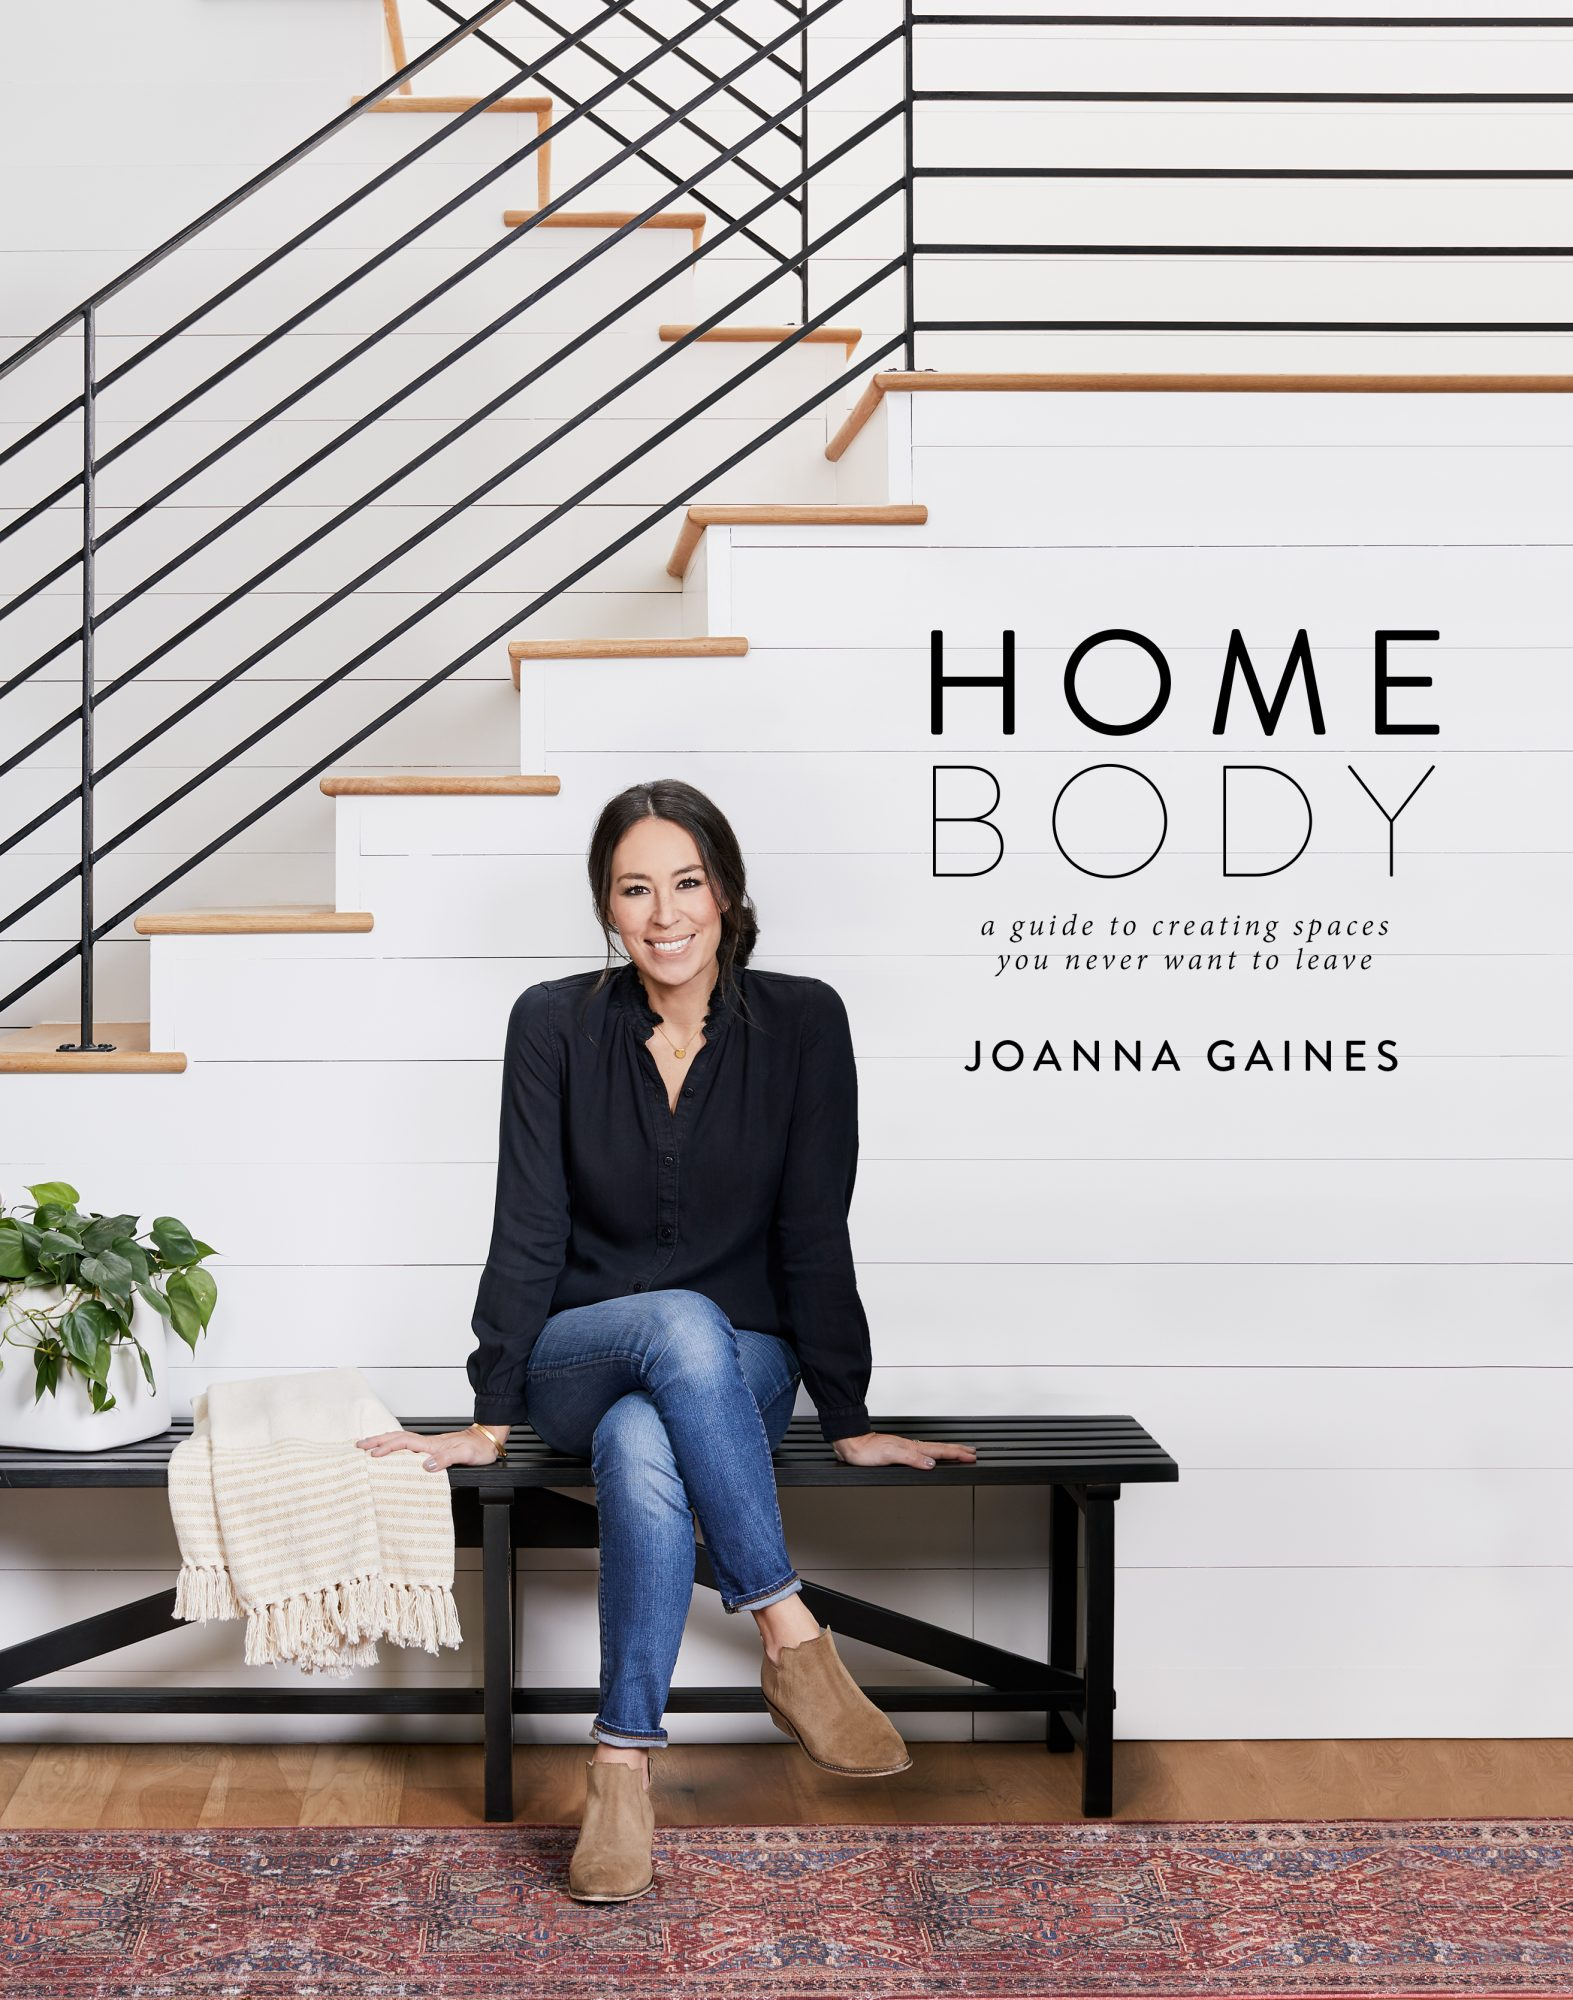 Joanna Gaines Reveals the Cover of Her Upcoming Design Book, Homebody hb_designbook_cover_6_5_18